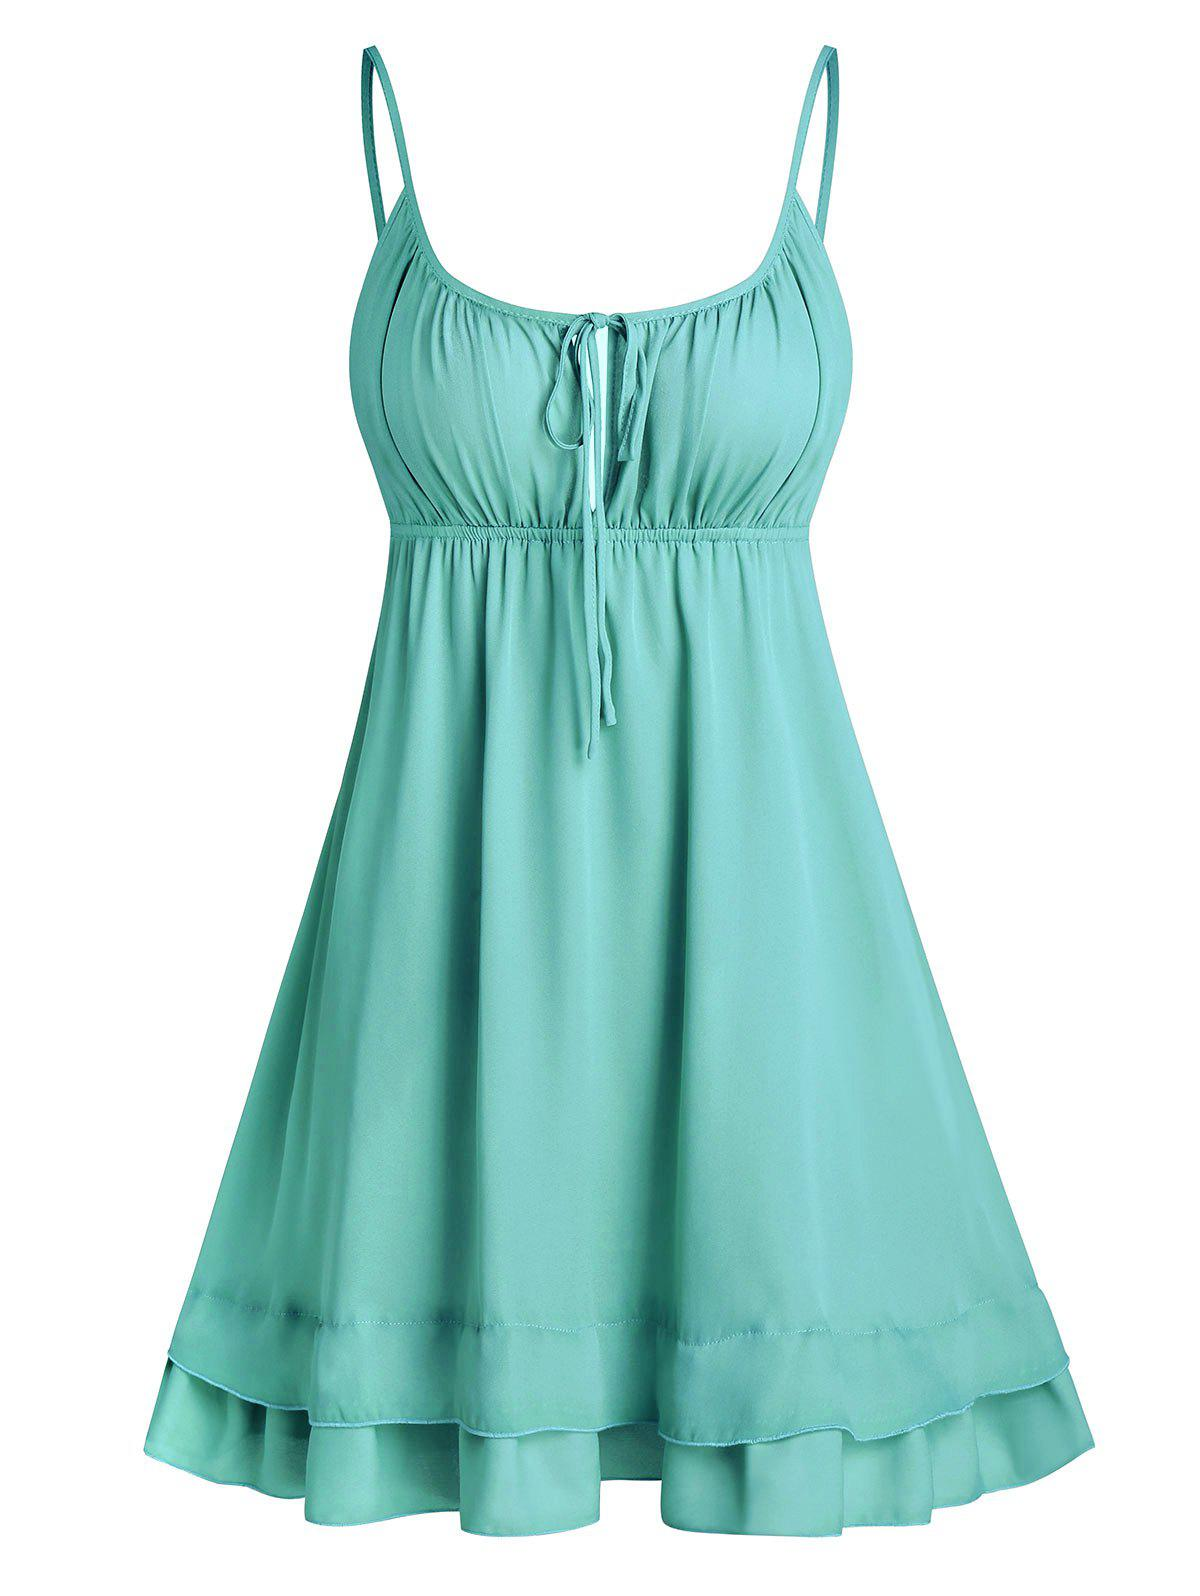 Open Back Tie Knot Flare Cami Dress - MEDIUM TURQUOISE 3XL